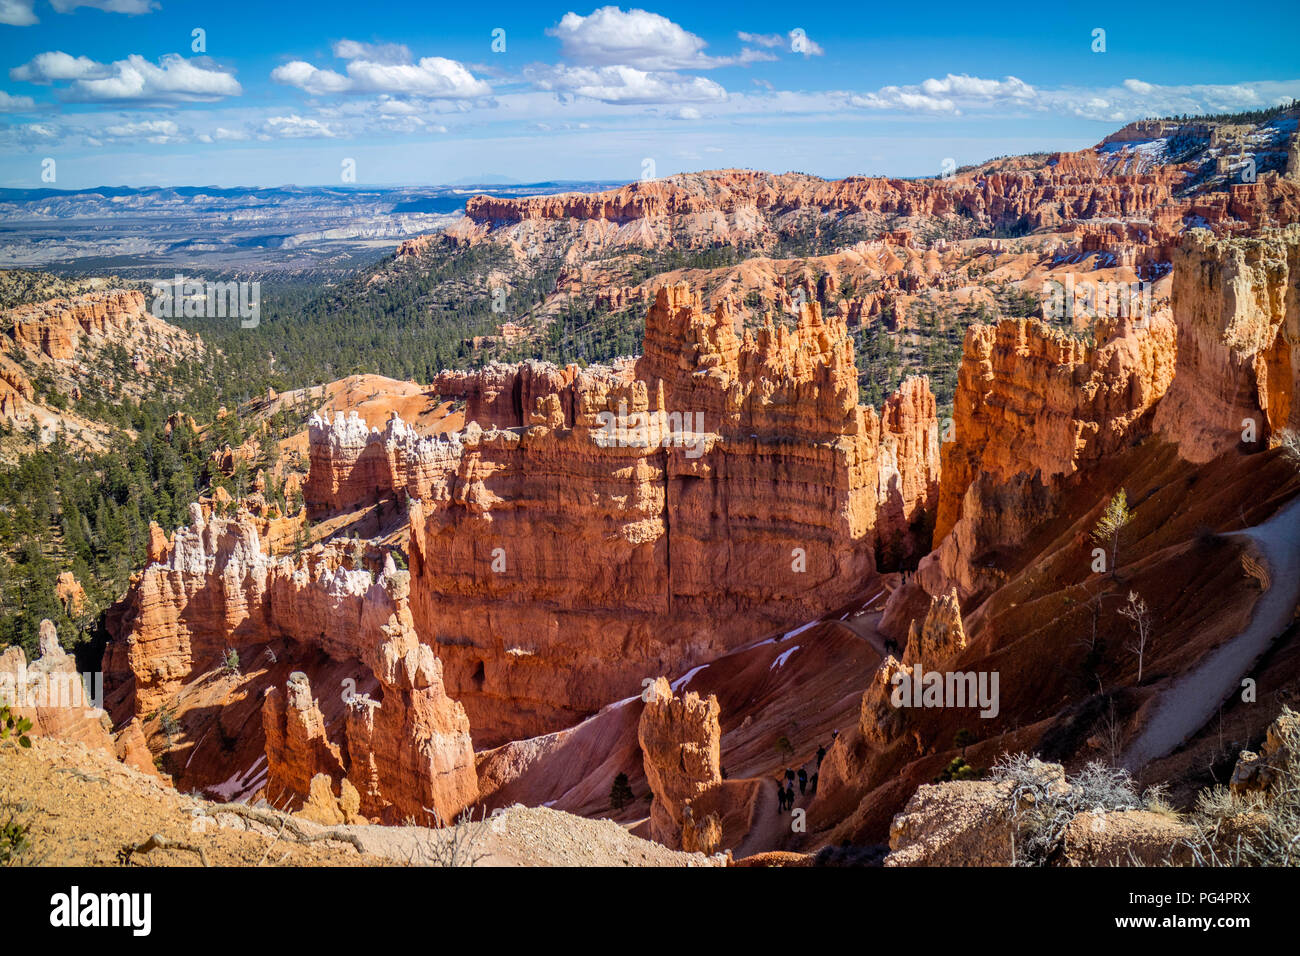 Rocher naturel formé par le célèbre site de Bryce Canyon National Park Photo Stock